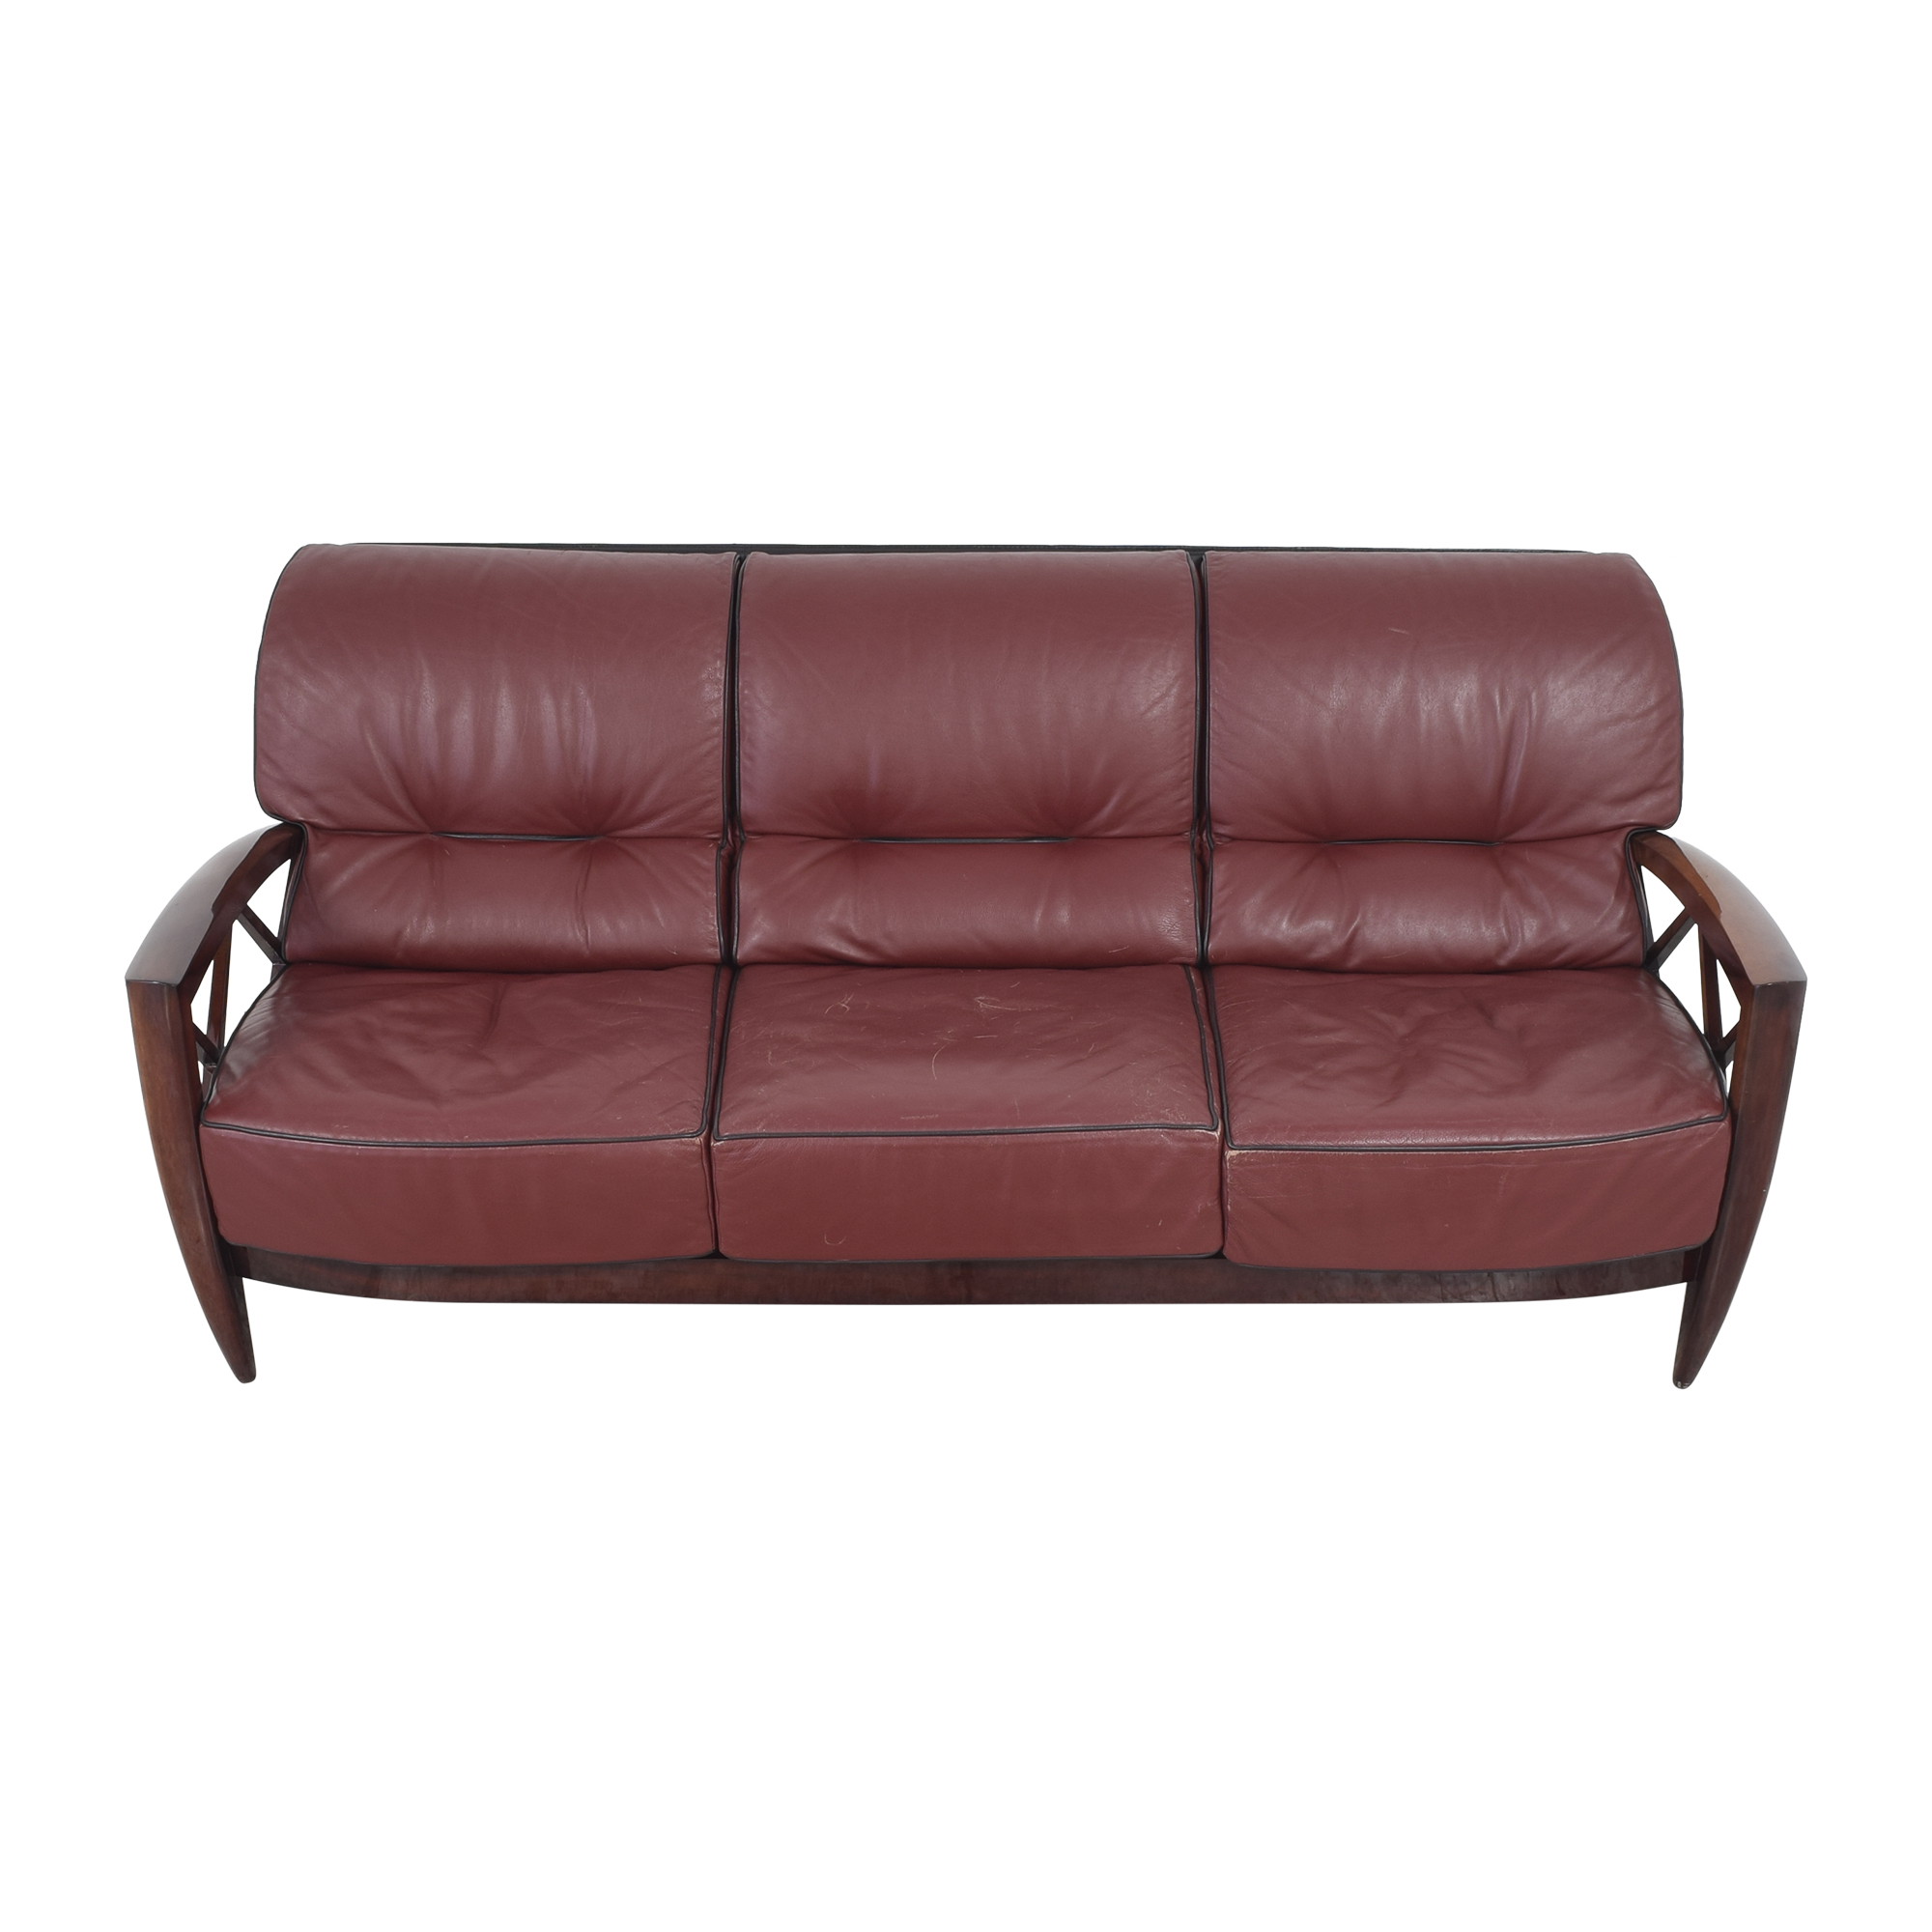 shop i4Mariani for Pace Collection Three Seat Sofa Pace Collection